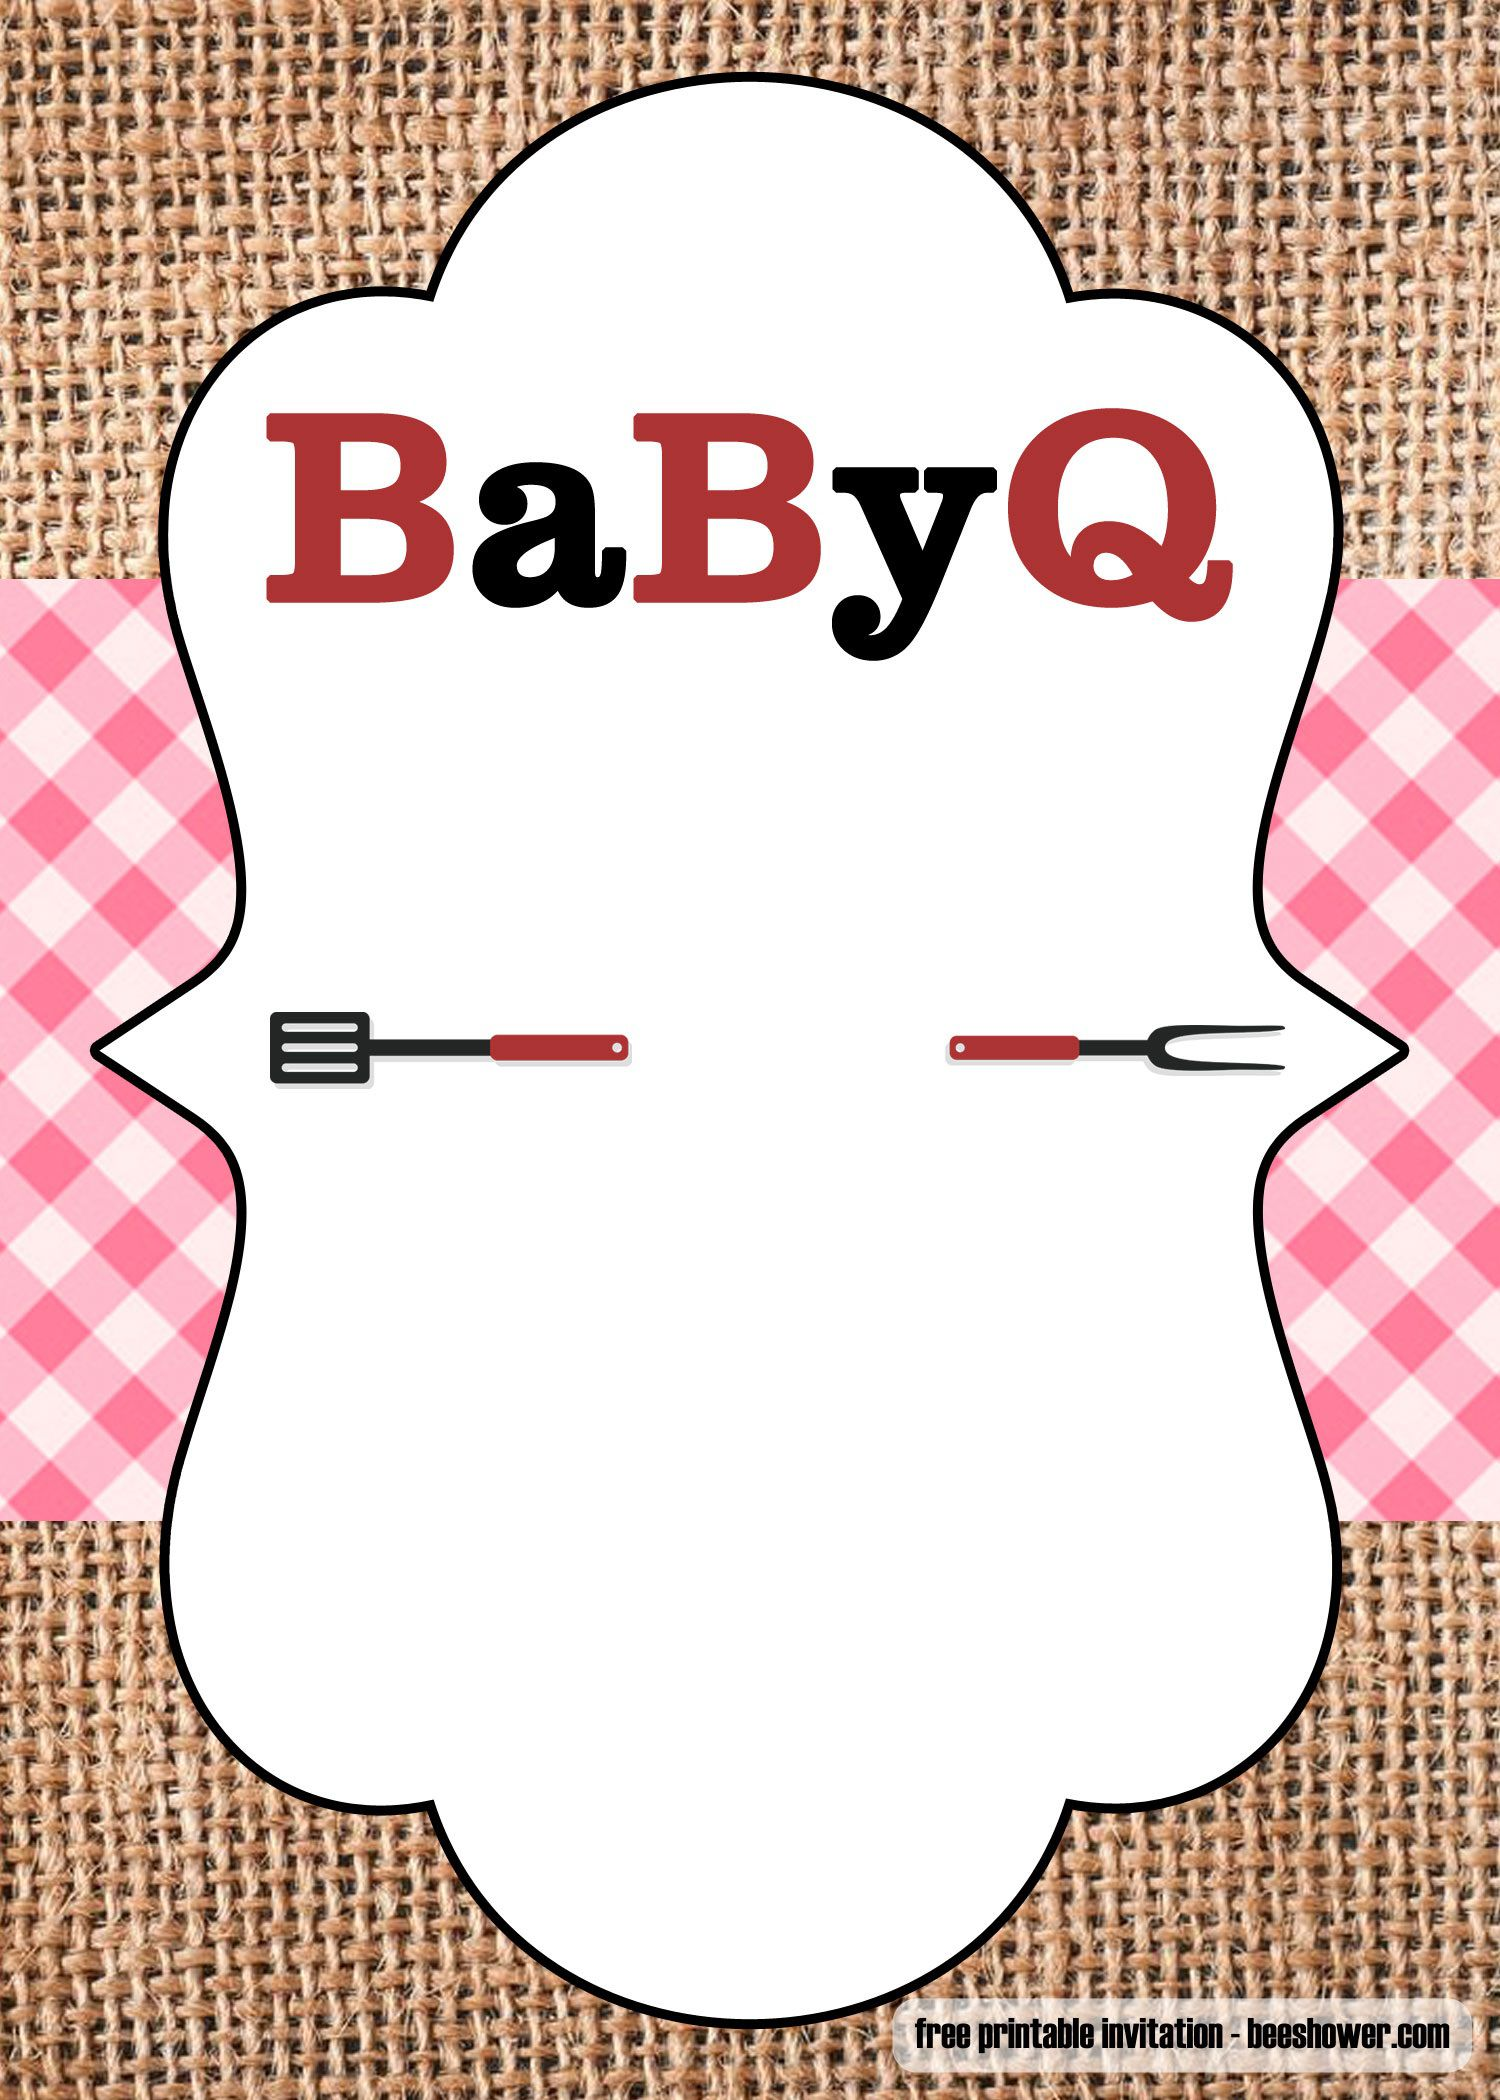 005 Awesome Baby Shower Template Free Printable Picture  Superhero Invitation For A Boy DiaperFull